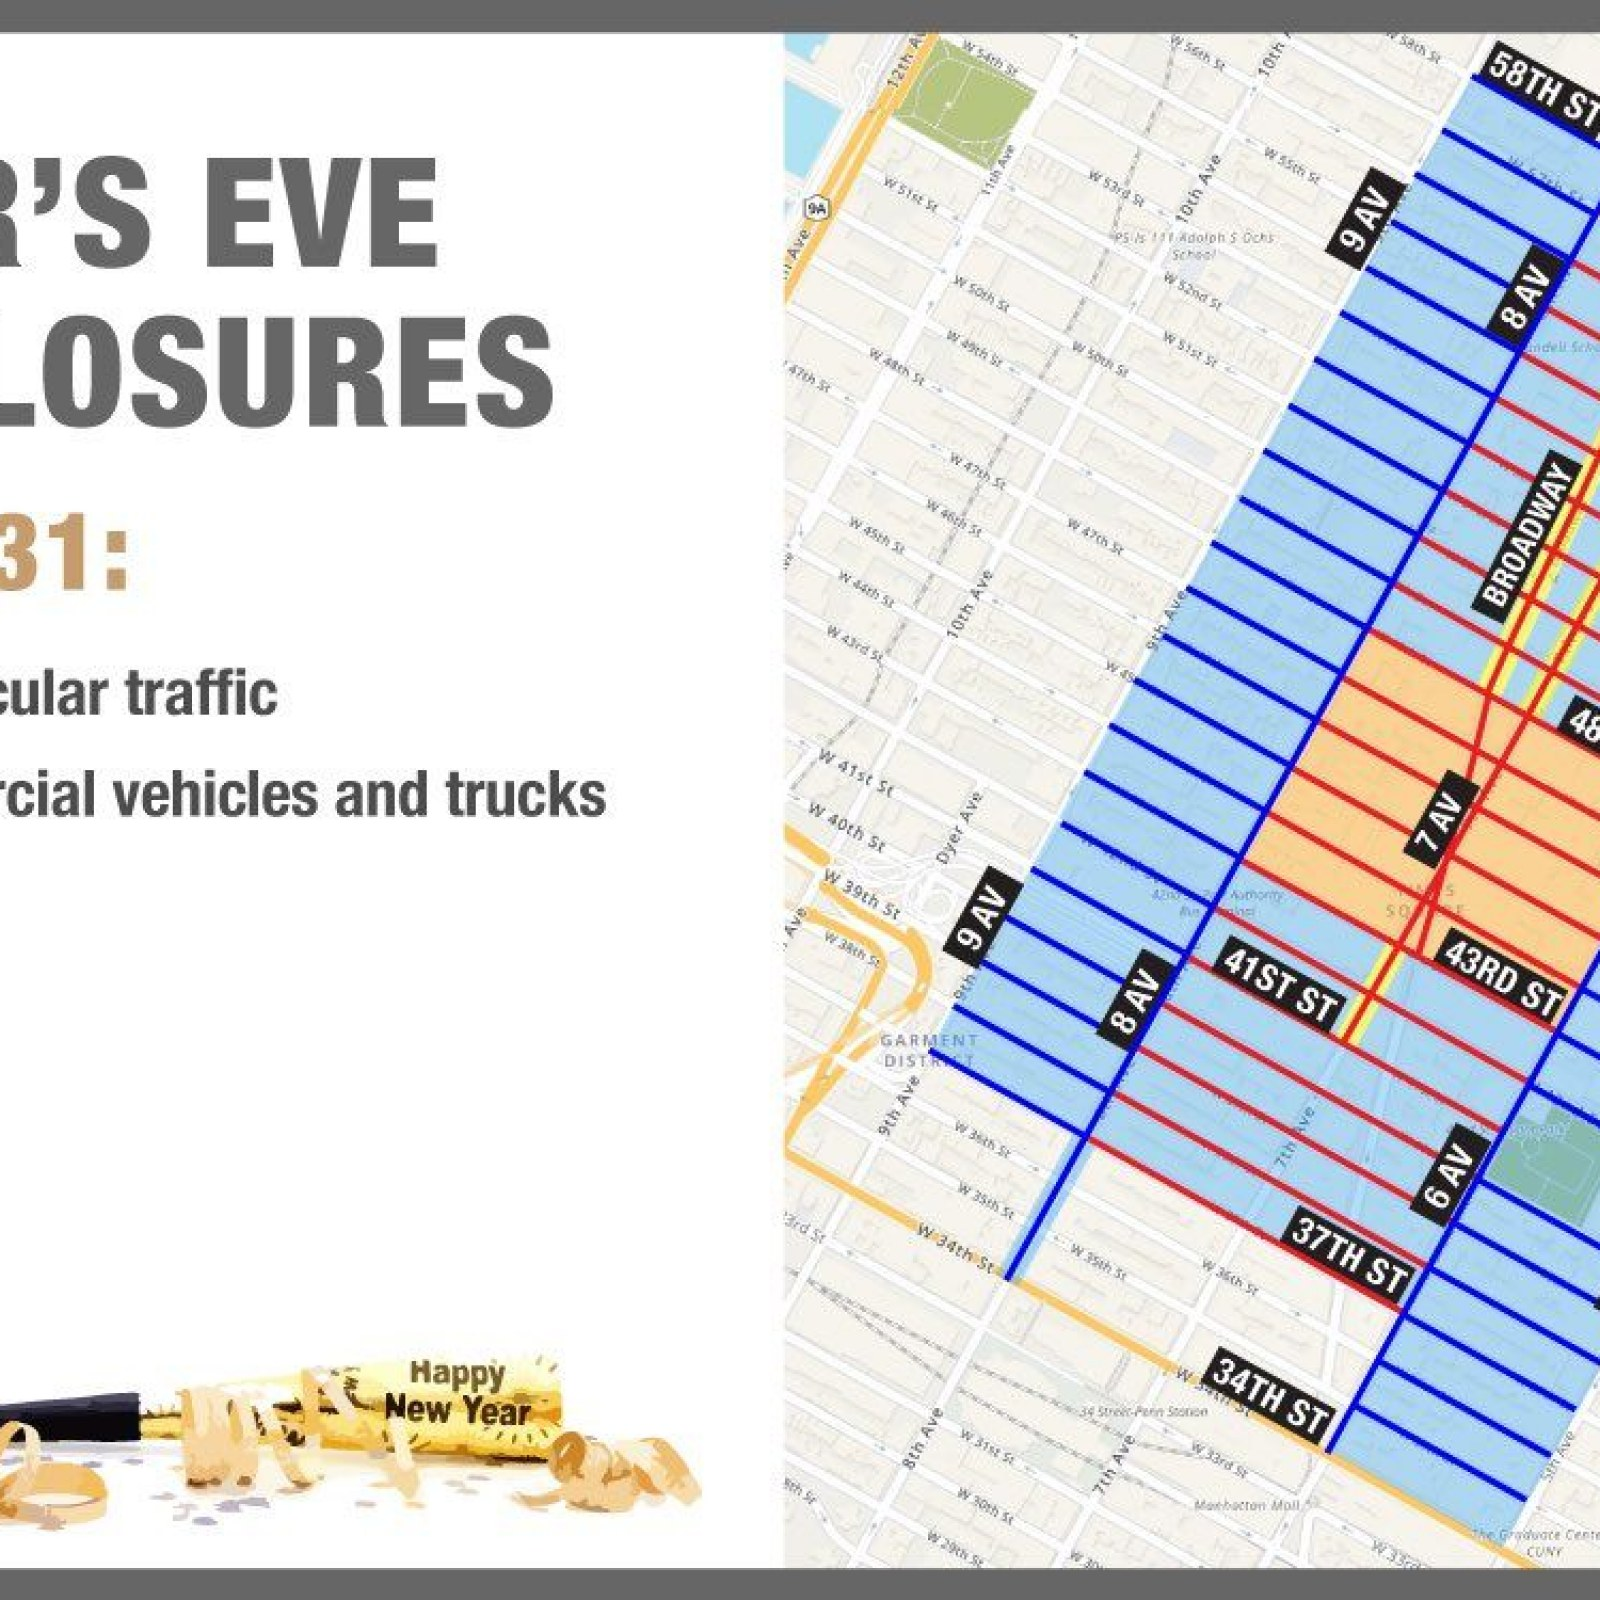 Subway Map From 88 St To 59th Street.New Year S Eve Times Square Nyc Map Road Closures Parking Information